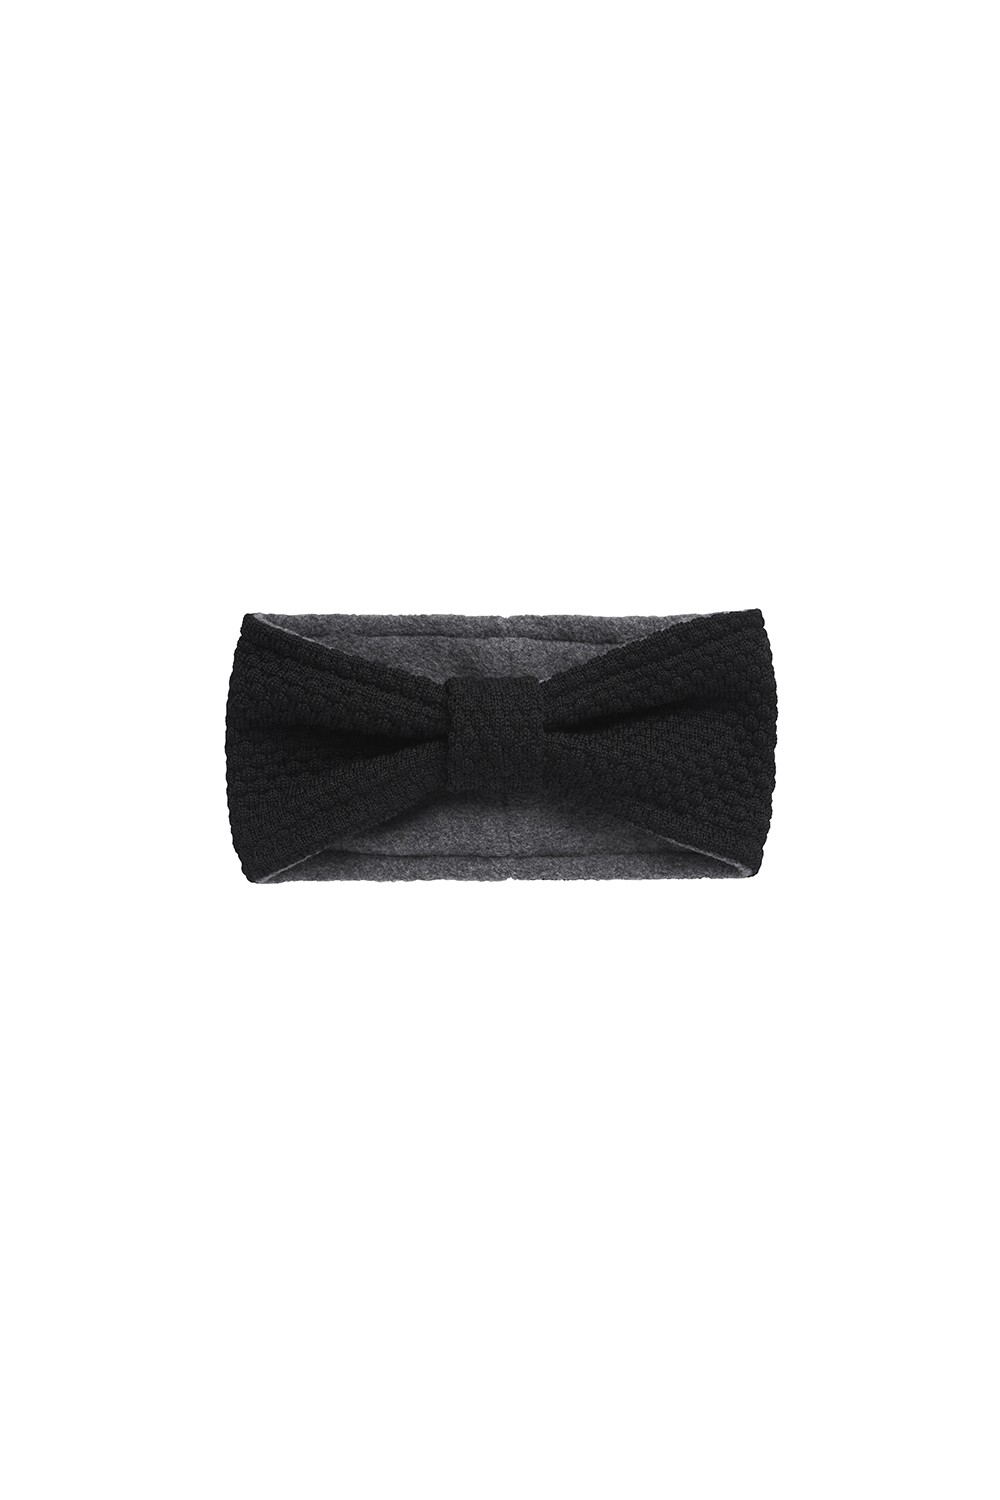 MP 97577 08 Oslo Headband w. Bow Black